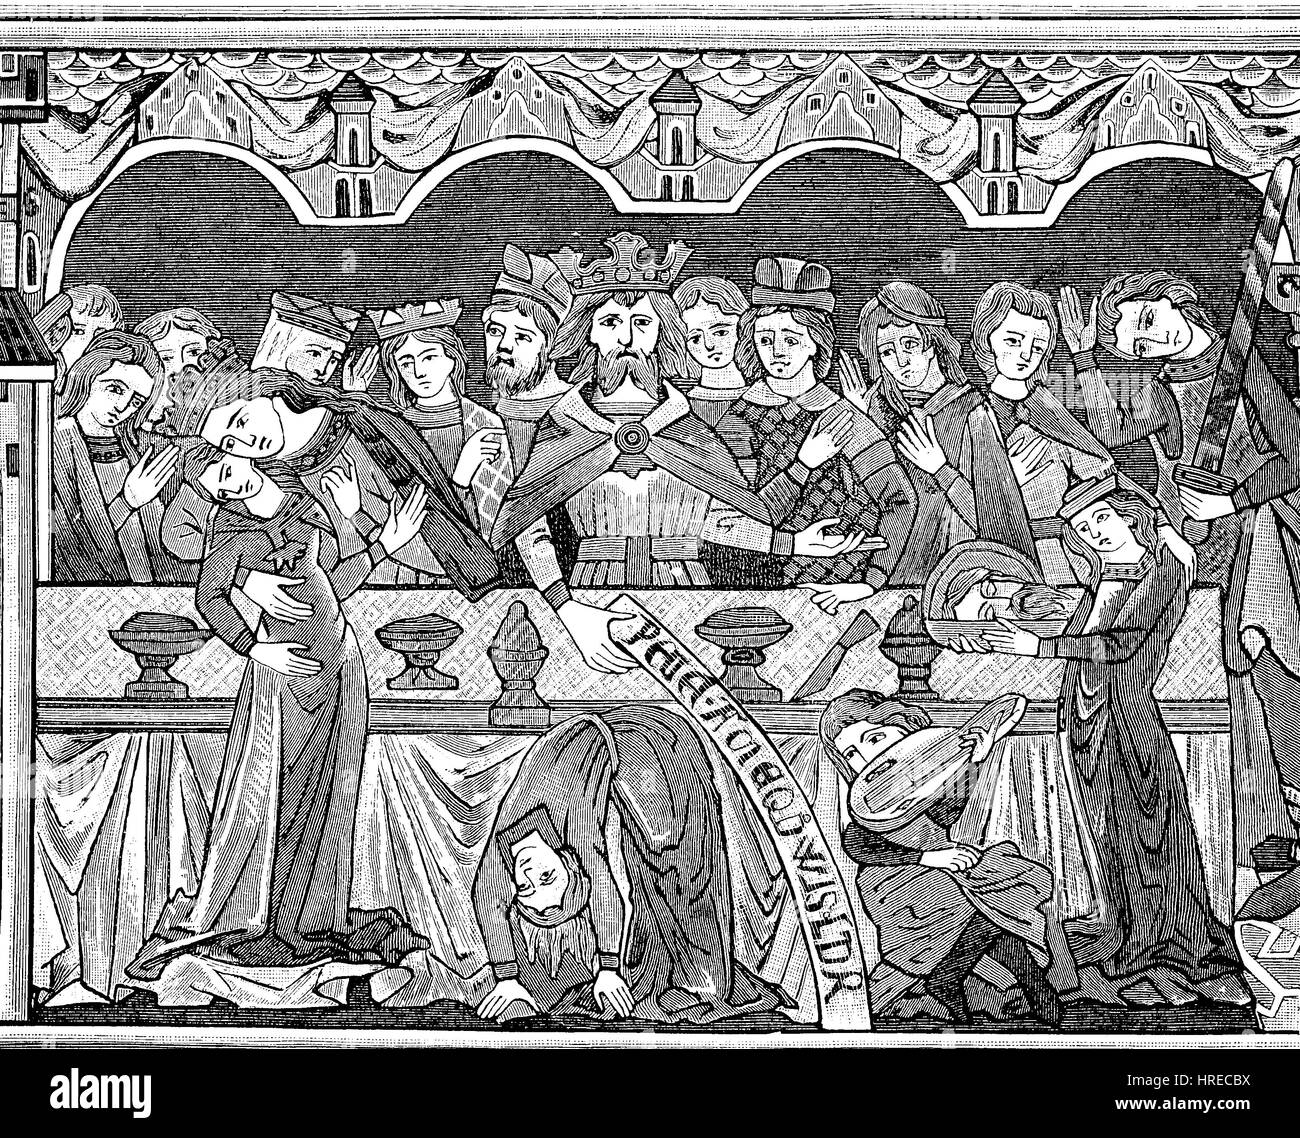 Princely festive table with entertainments by dancers and dancers at the end of the 12th century, wall painting - Stock Image